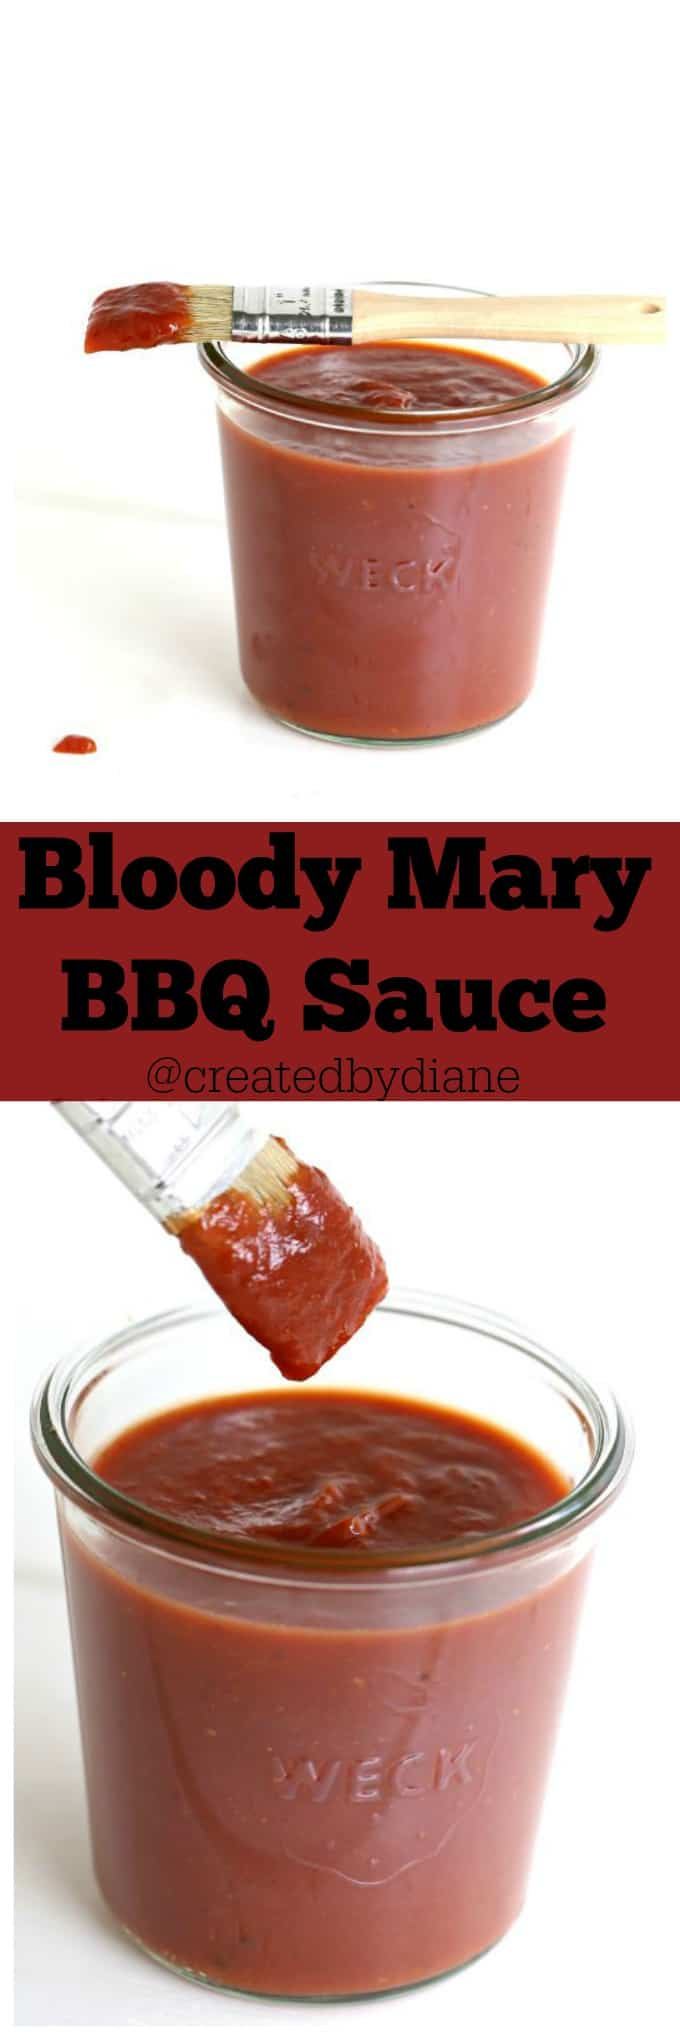 Bloody Mary BBQ Sauce @createdbydiane